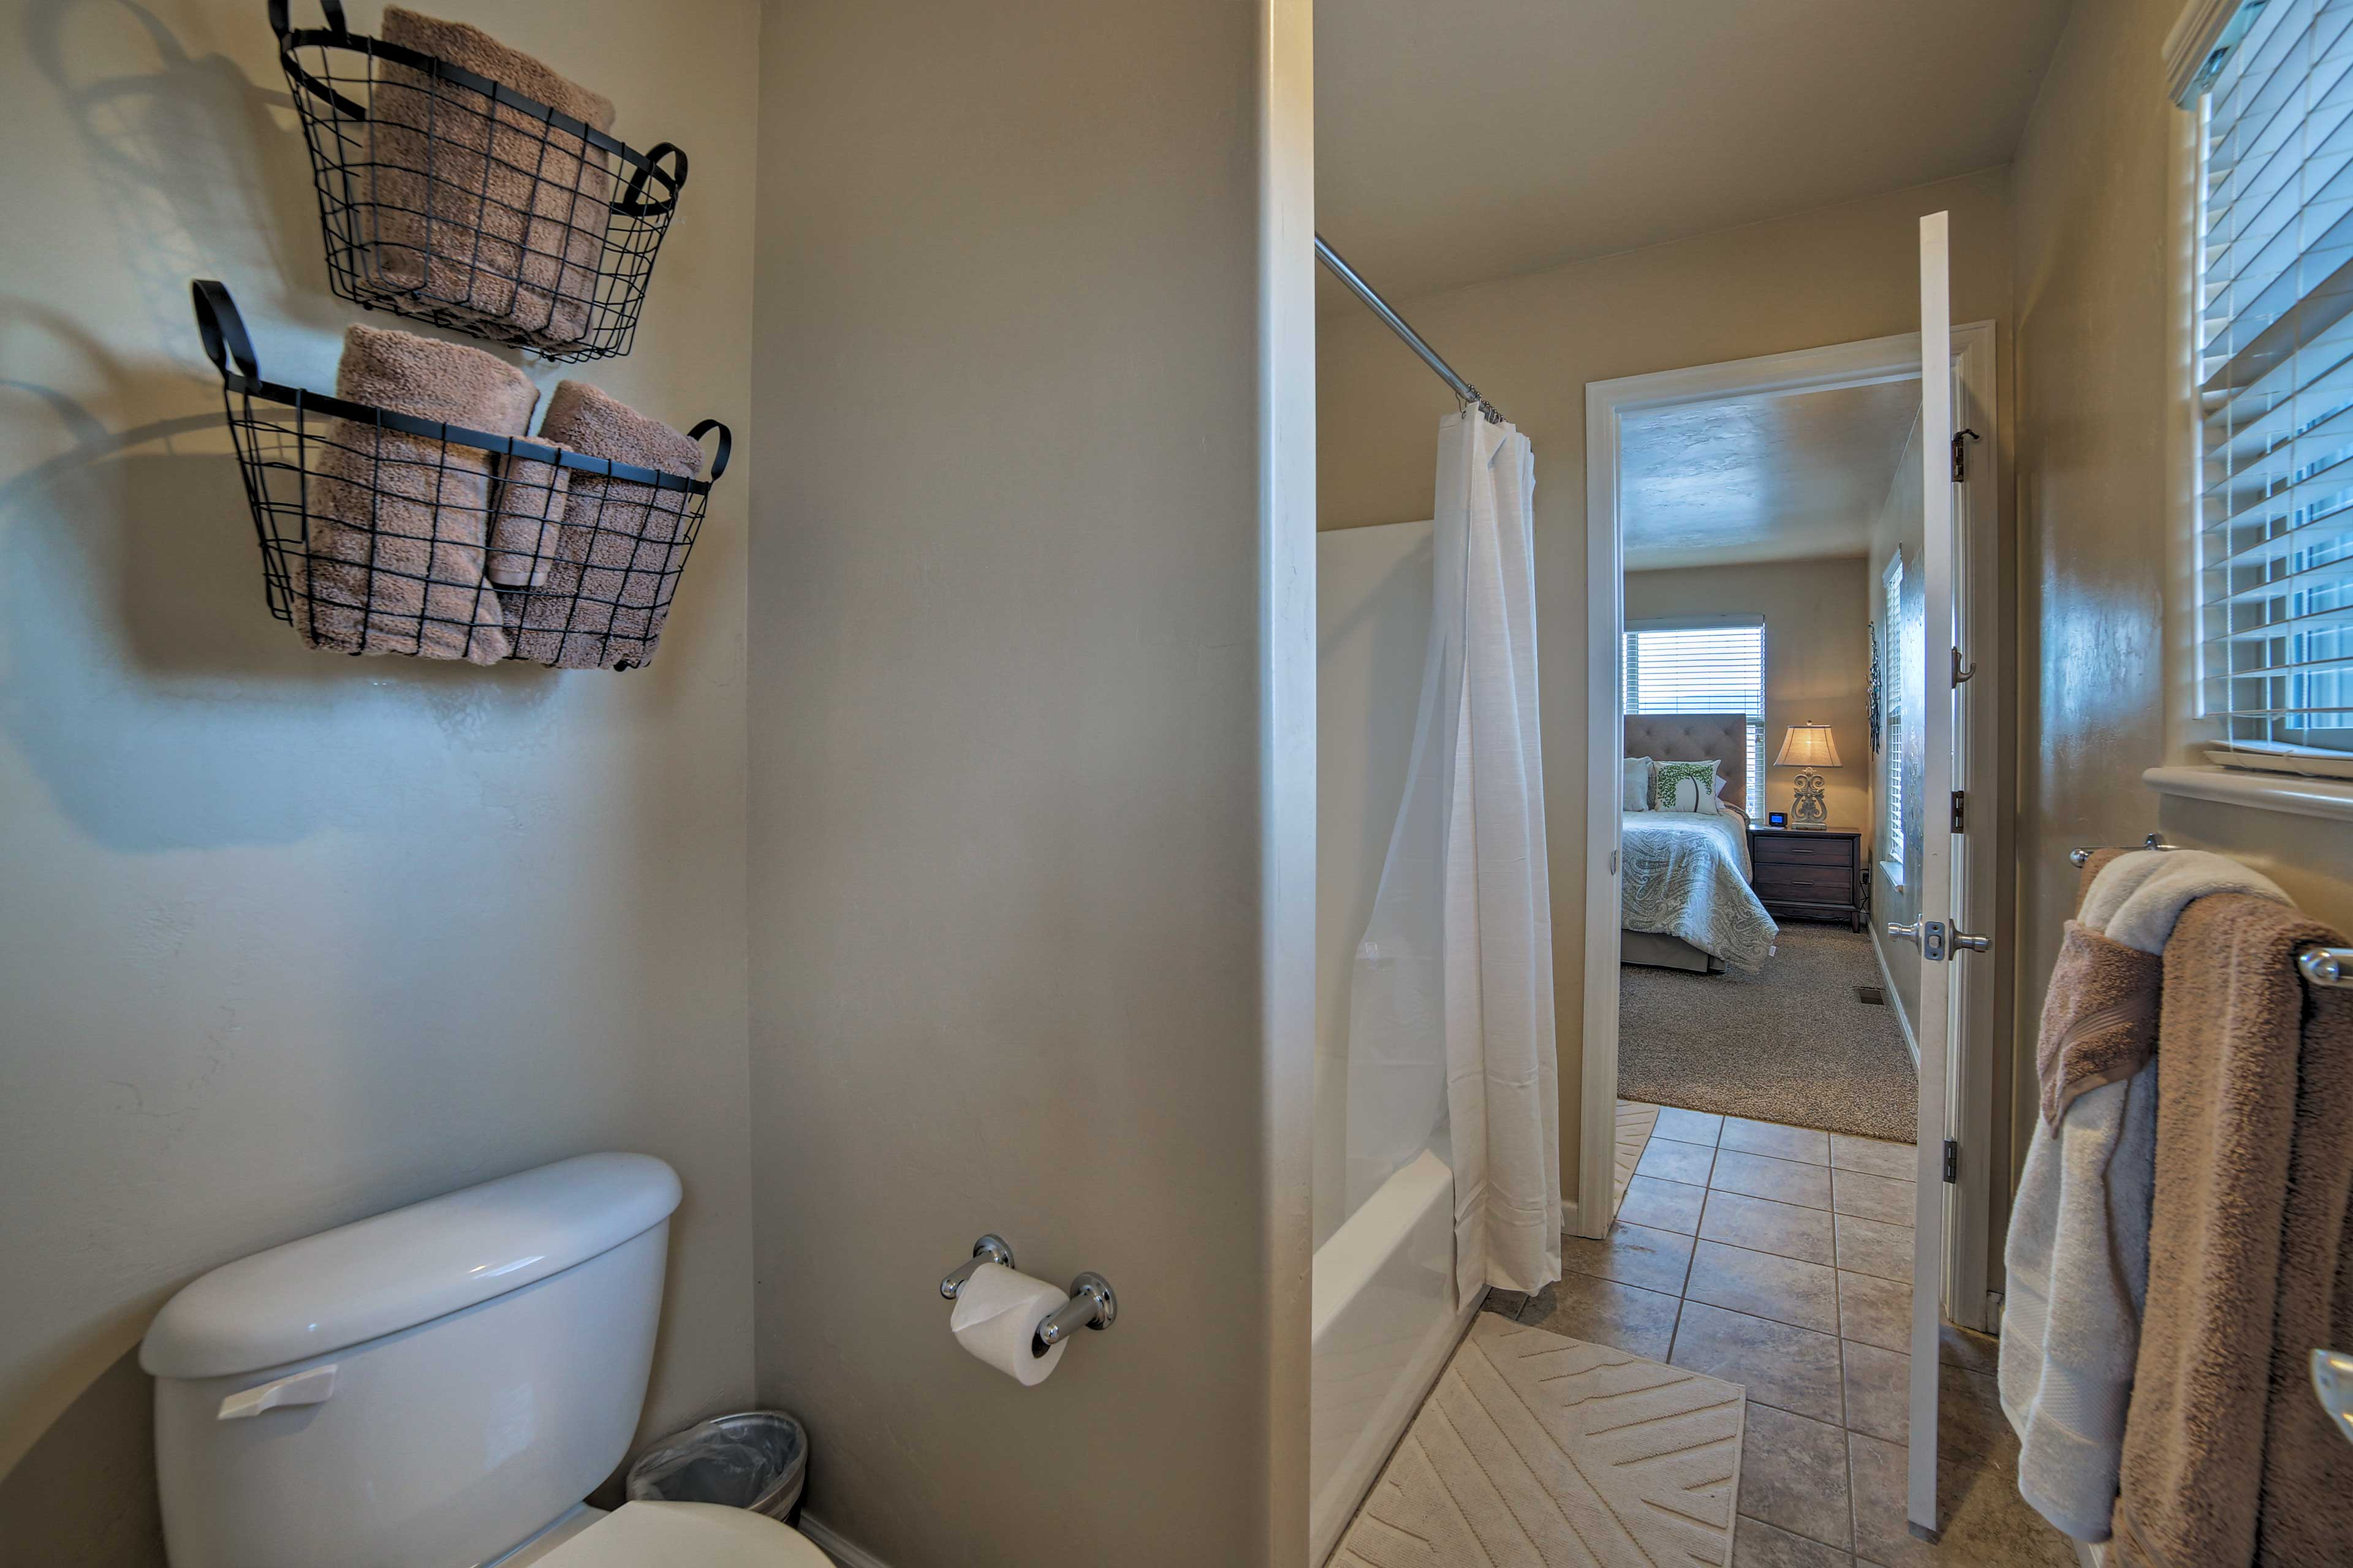 This full bathroom provides a sizable shower/tub combo.